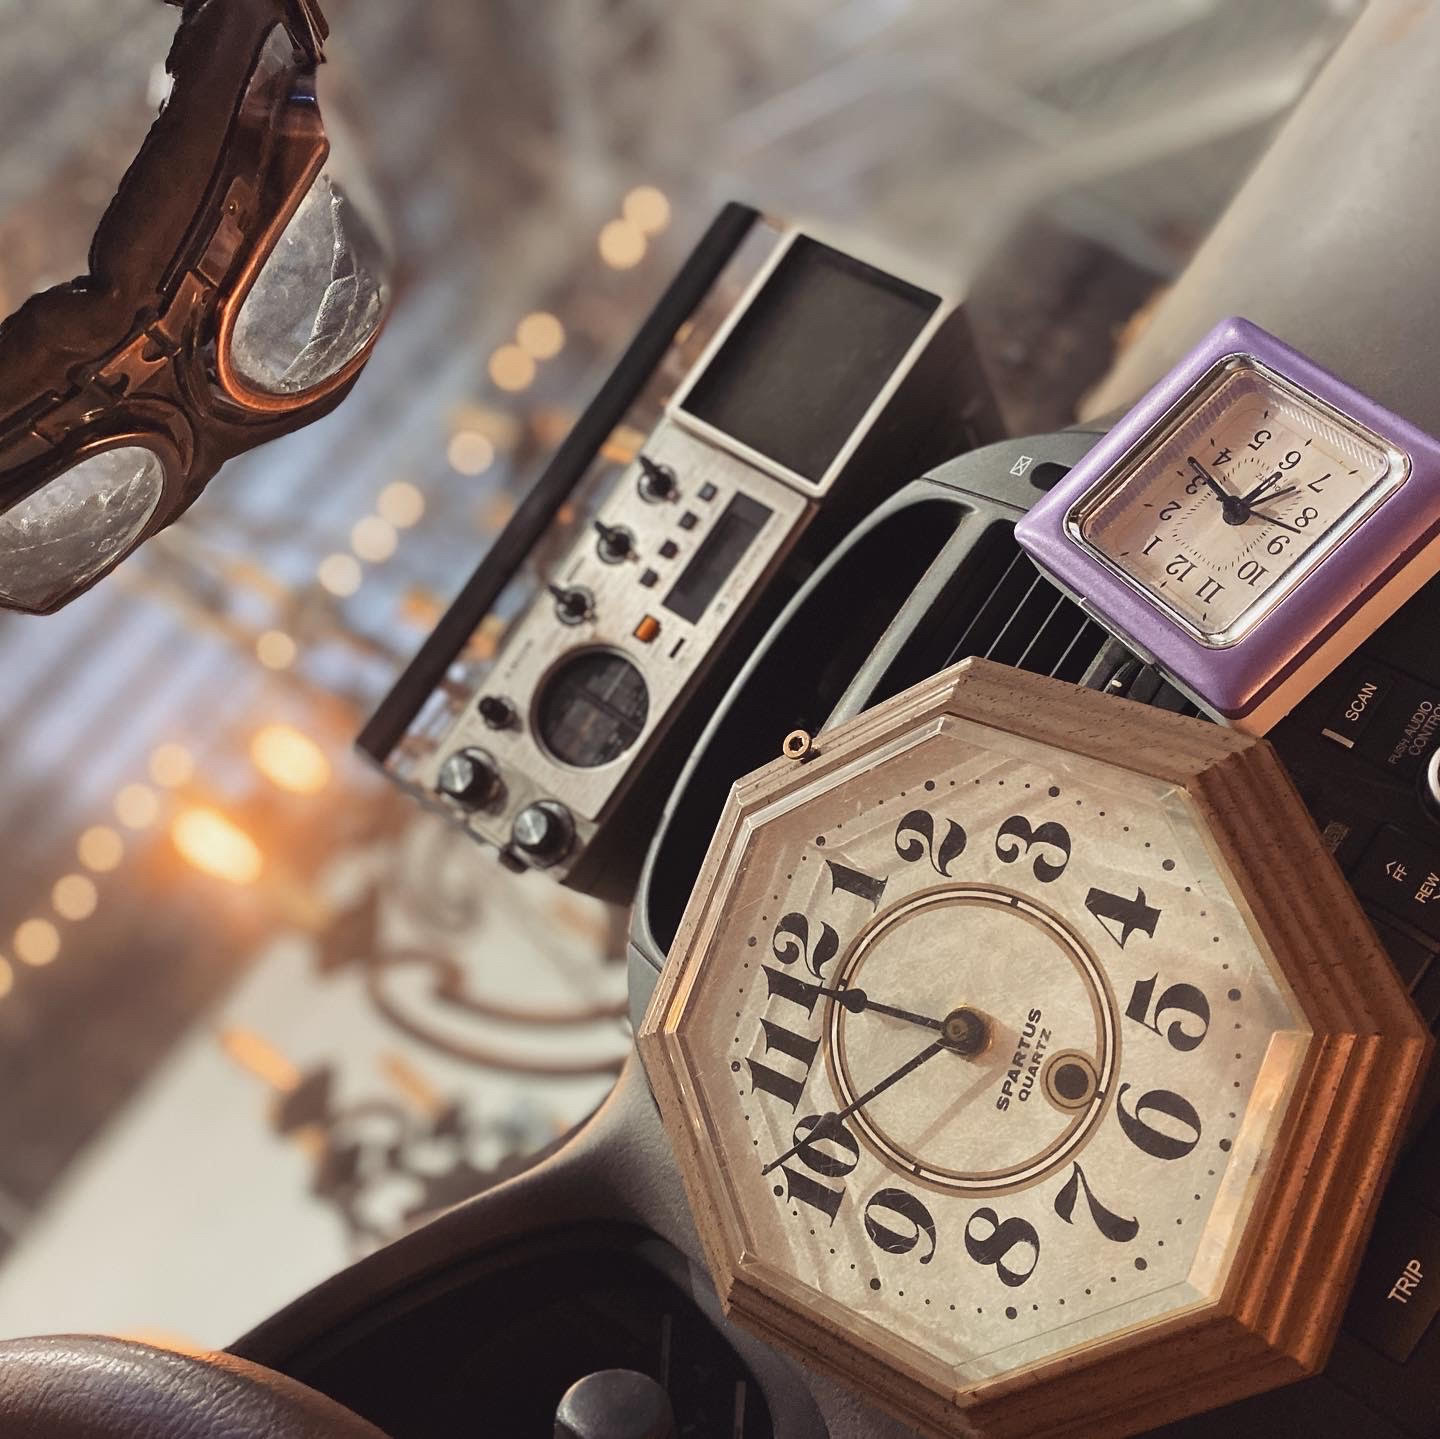 A photo of a collection of time pieces with an old CB radio.